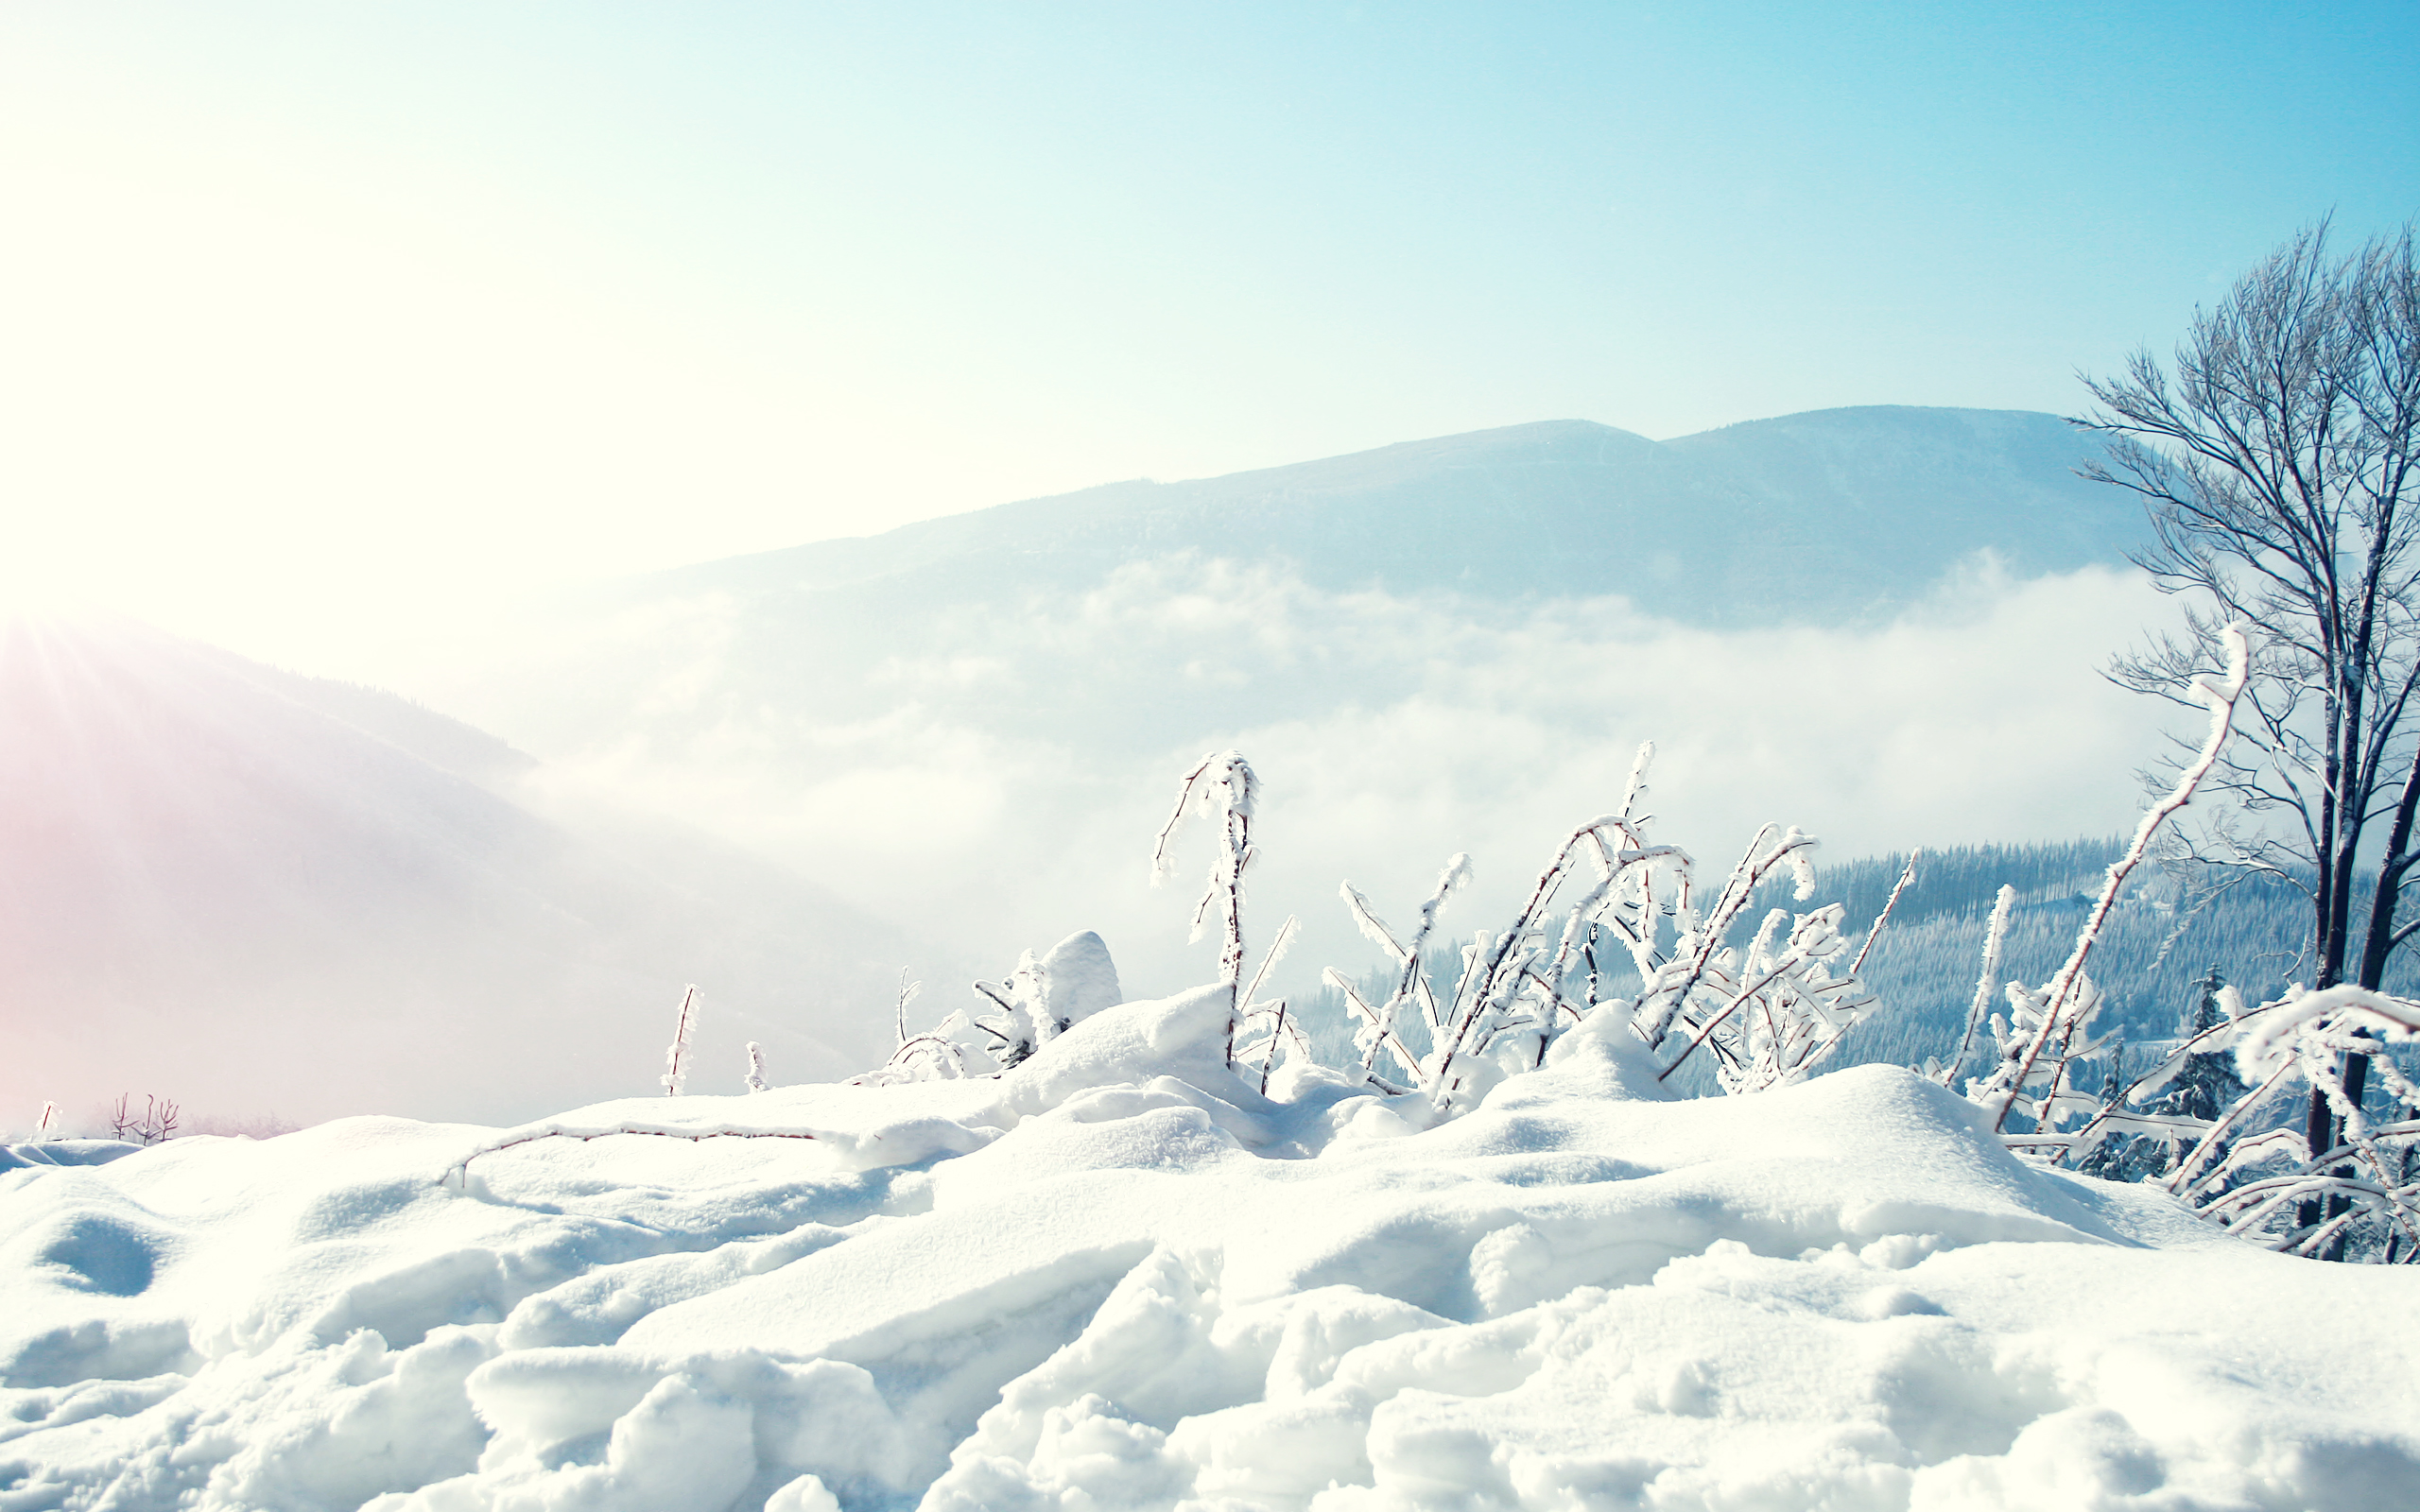 Snow Winter Mountains Wallpapers HD Wallpapers 2560x1600